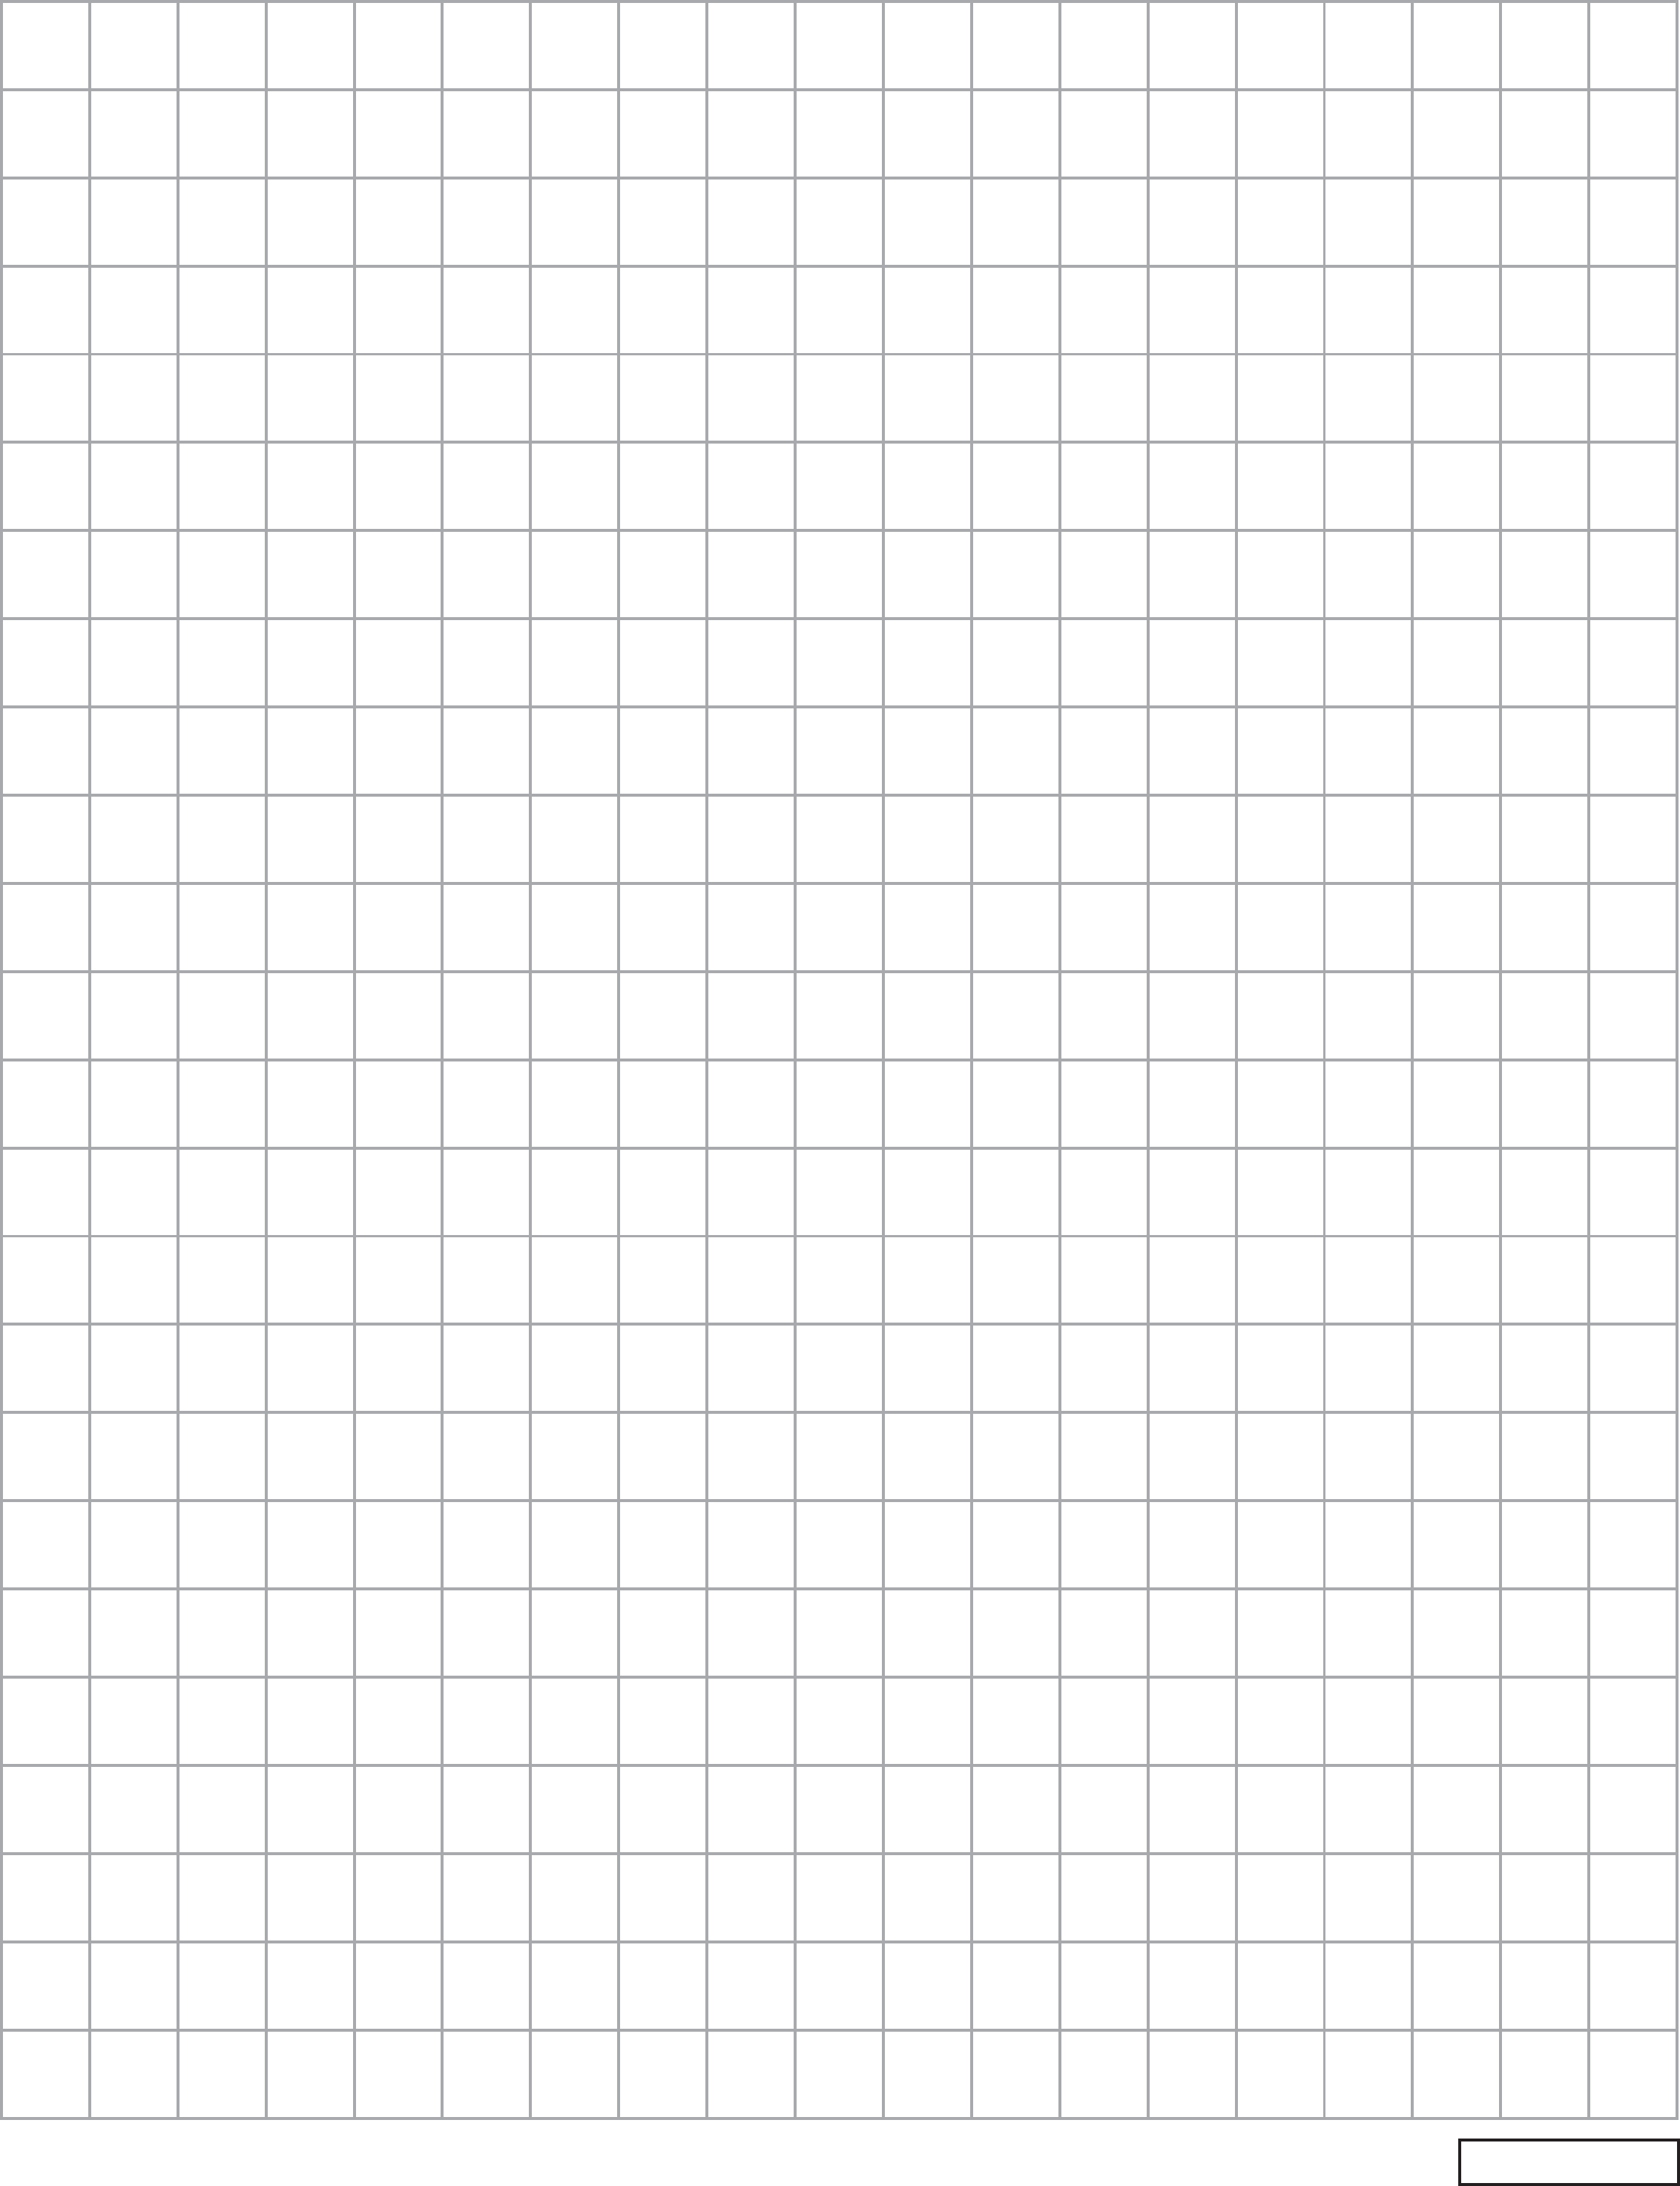 Blank Bar Graph Paper Template